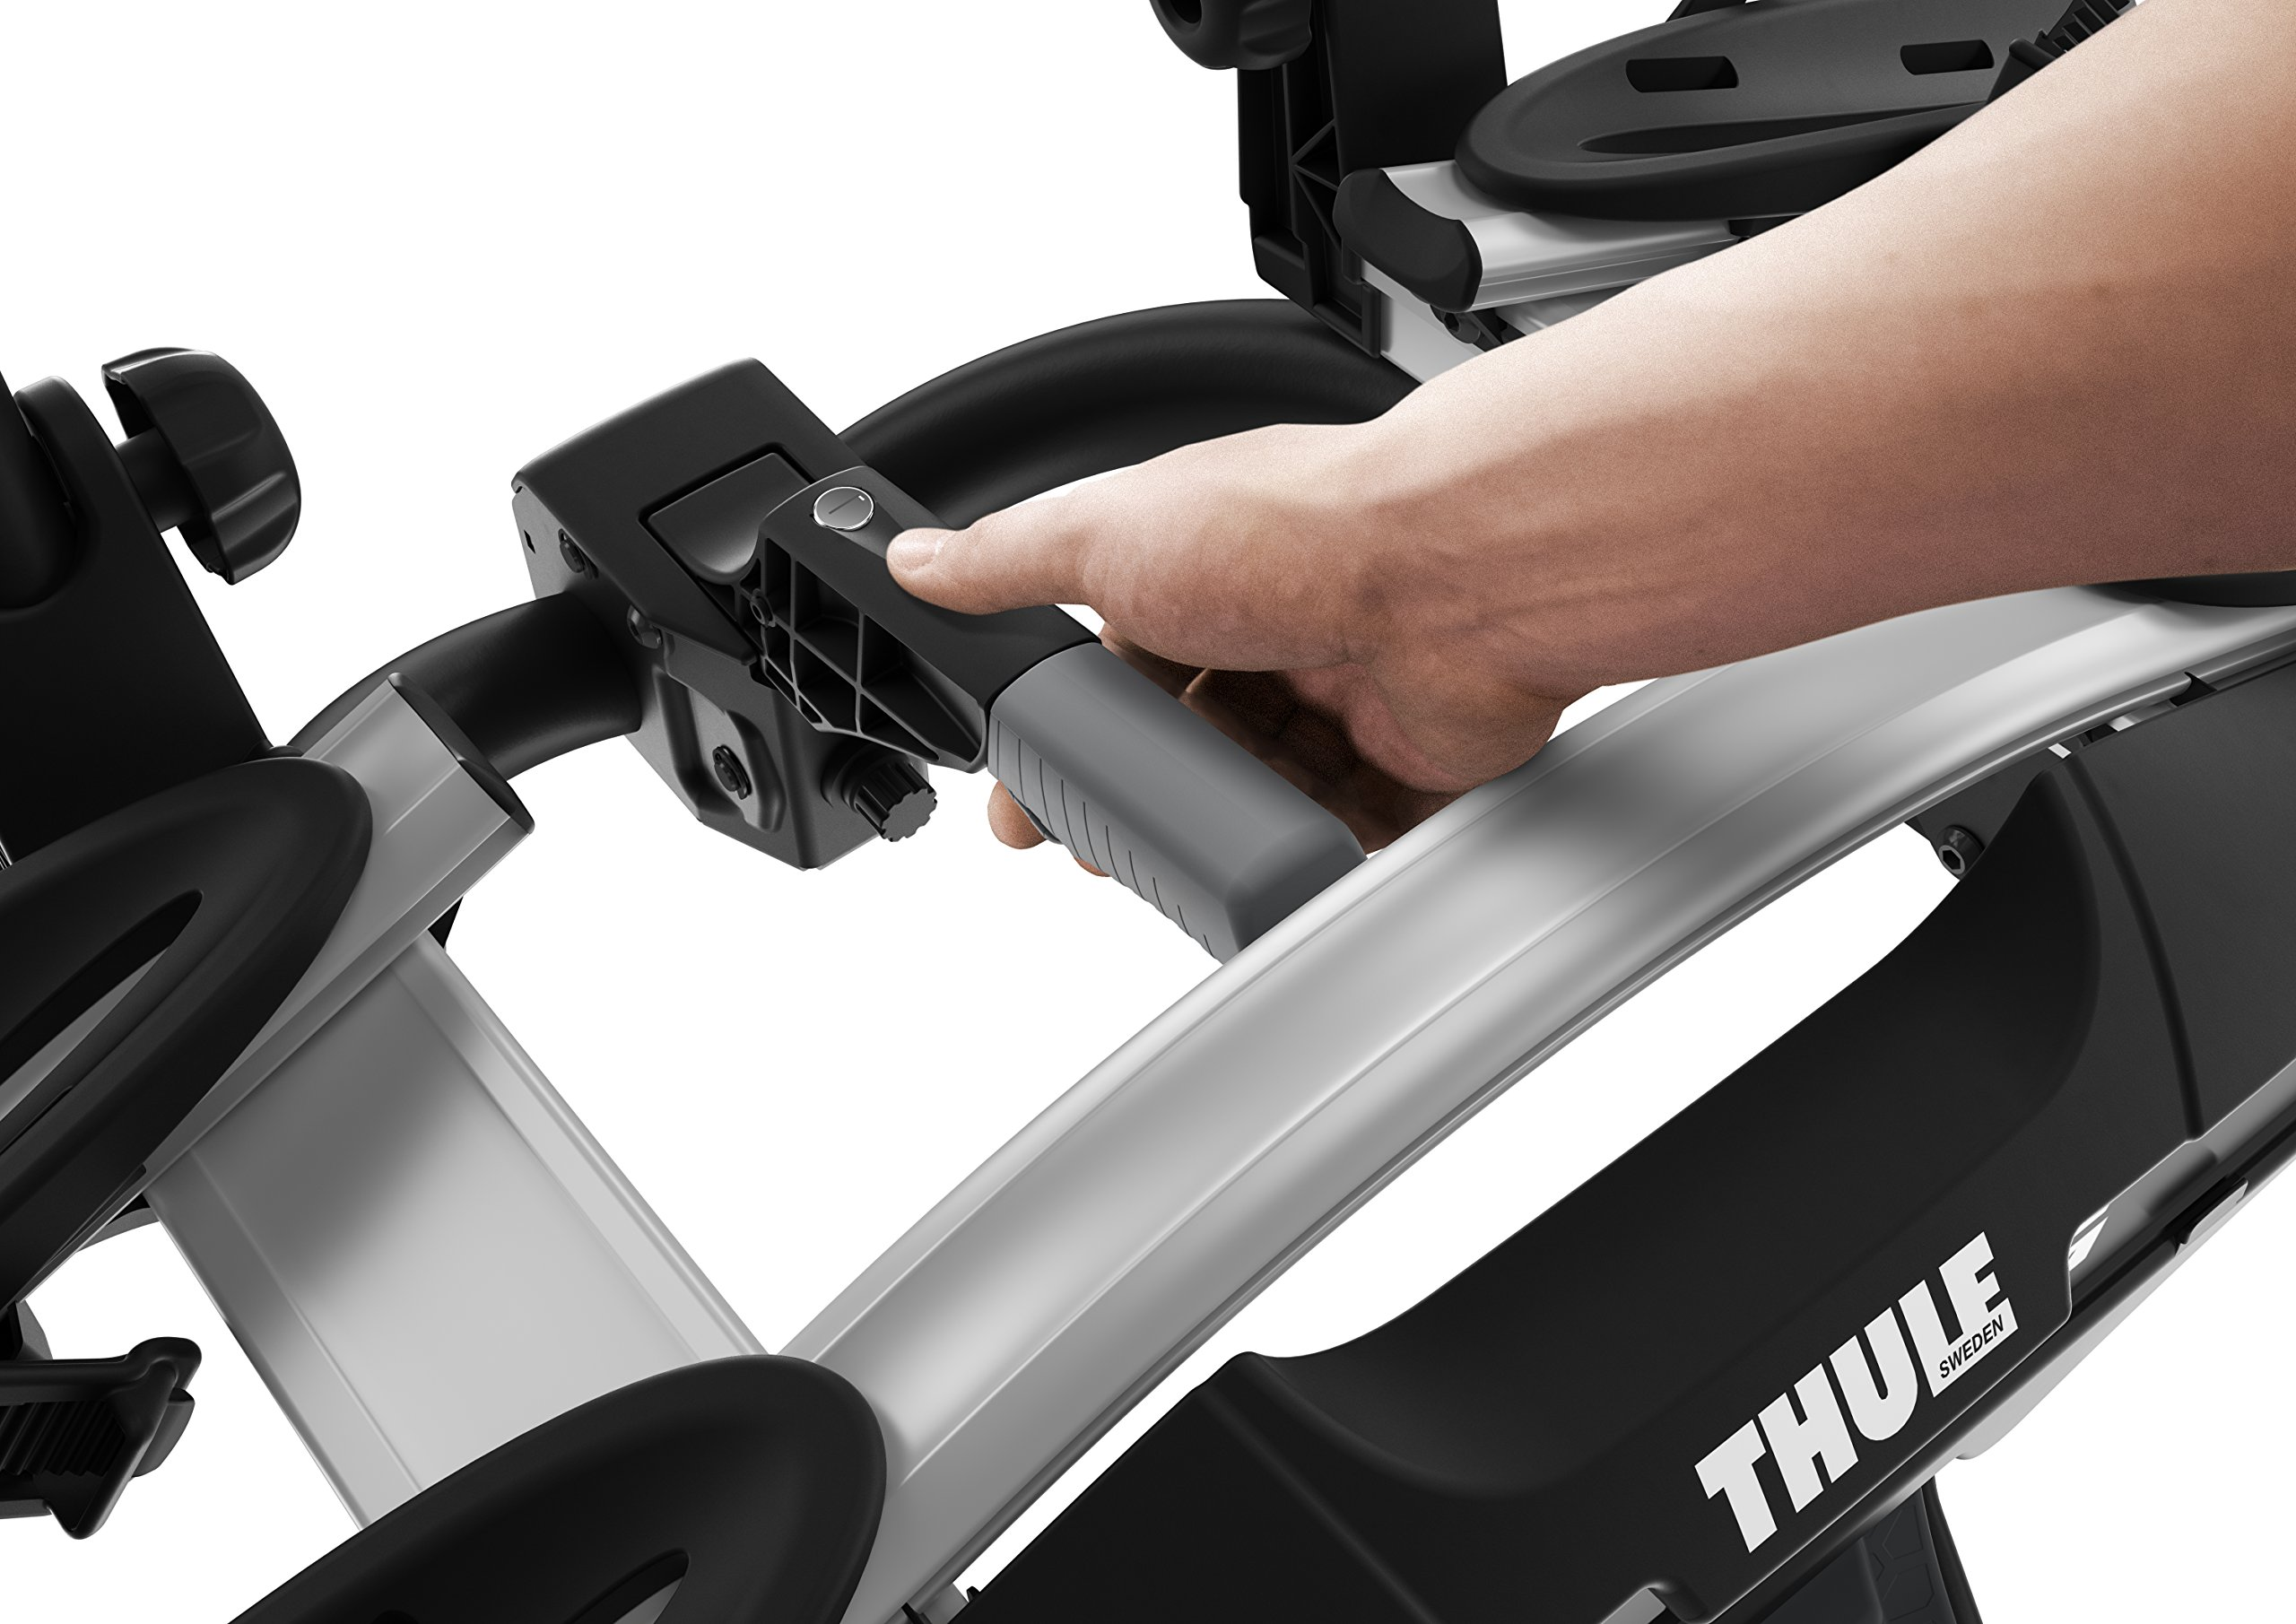 Thule 925001,Velo Compact 925, 2Bike, Towball Carrier, 7 pin 7